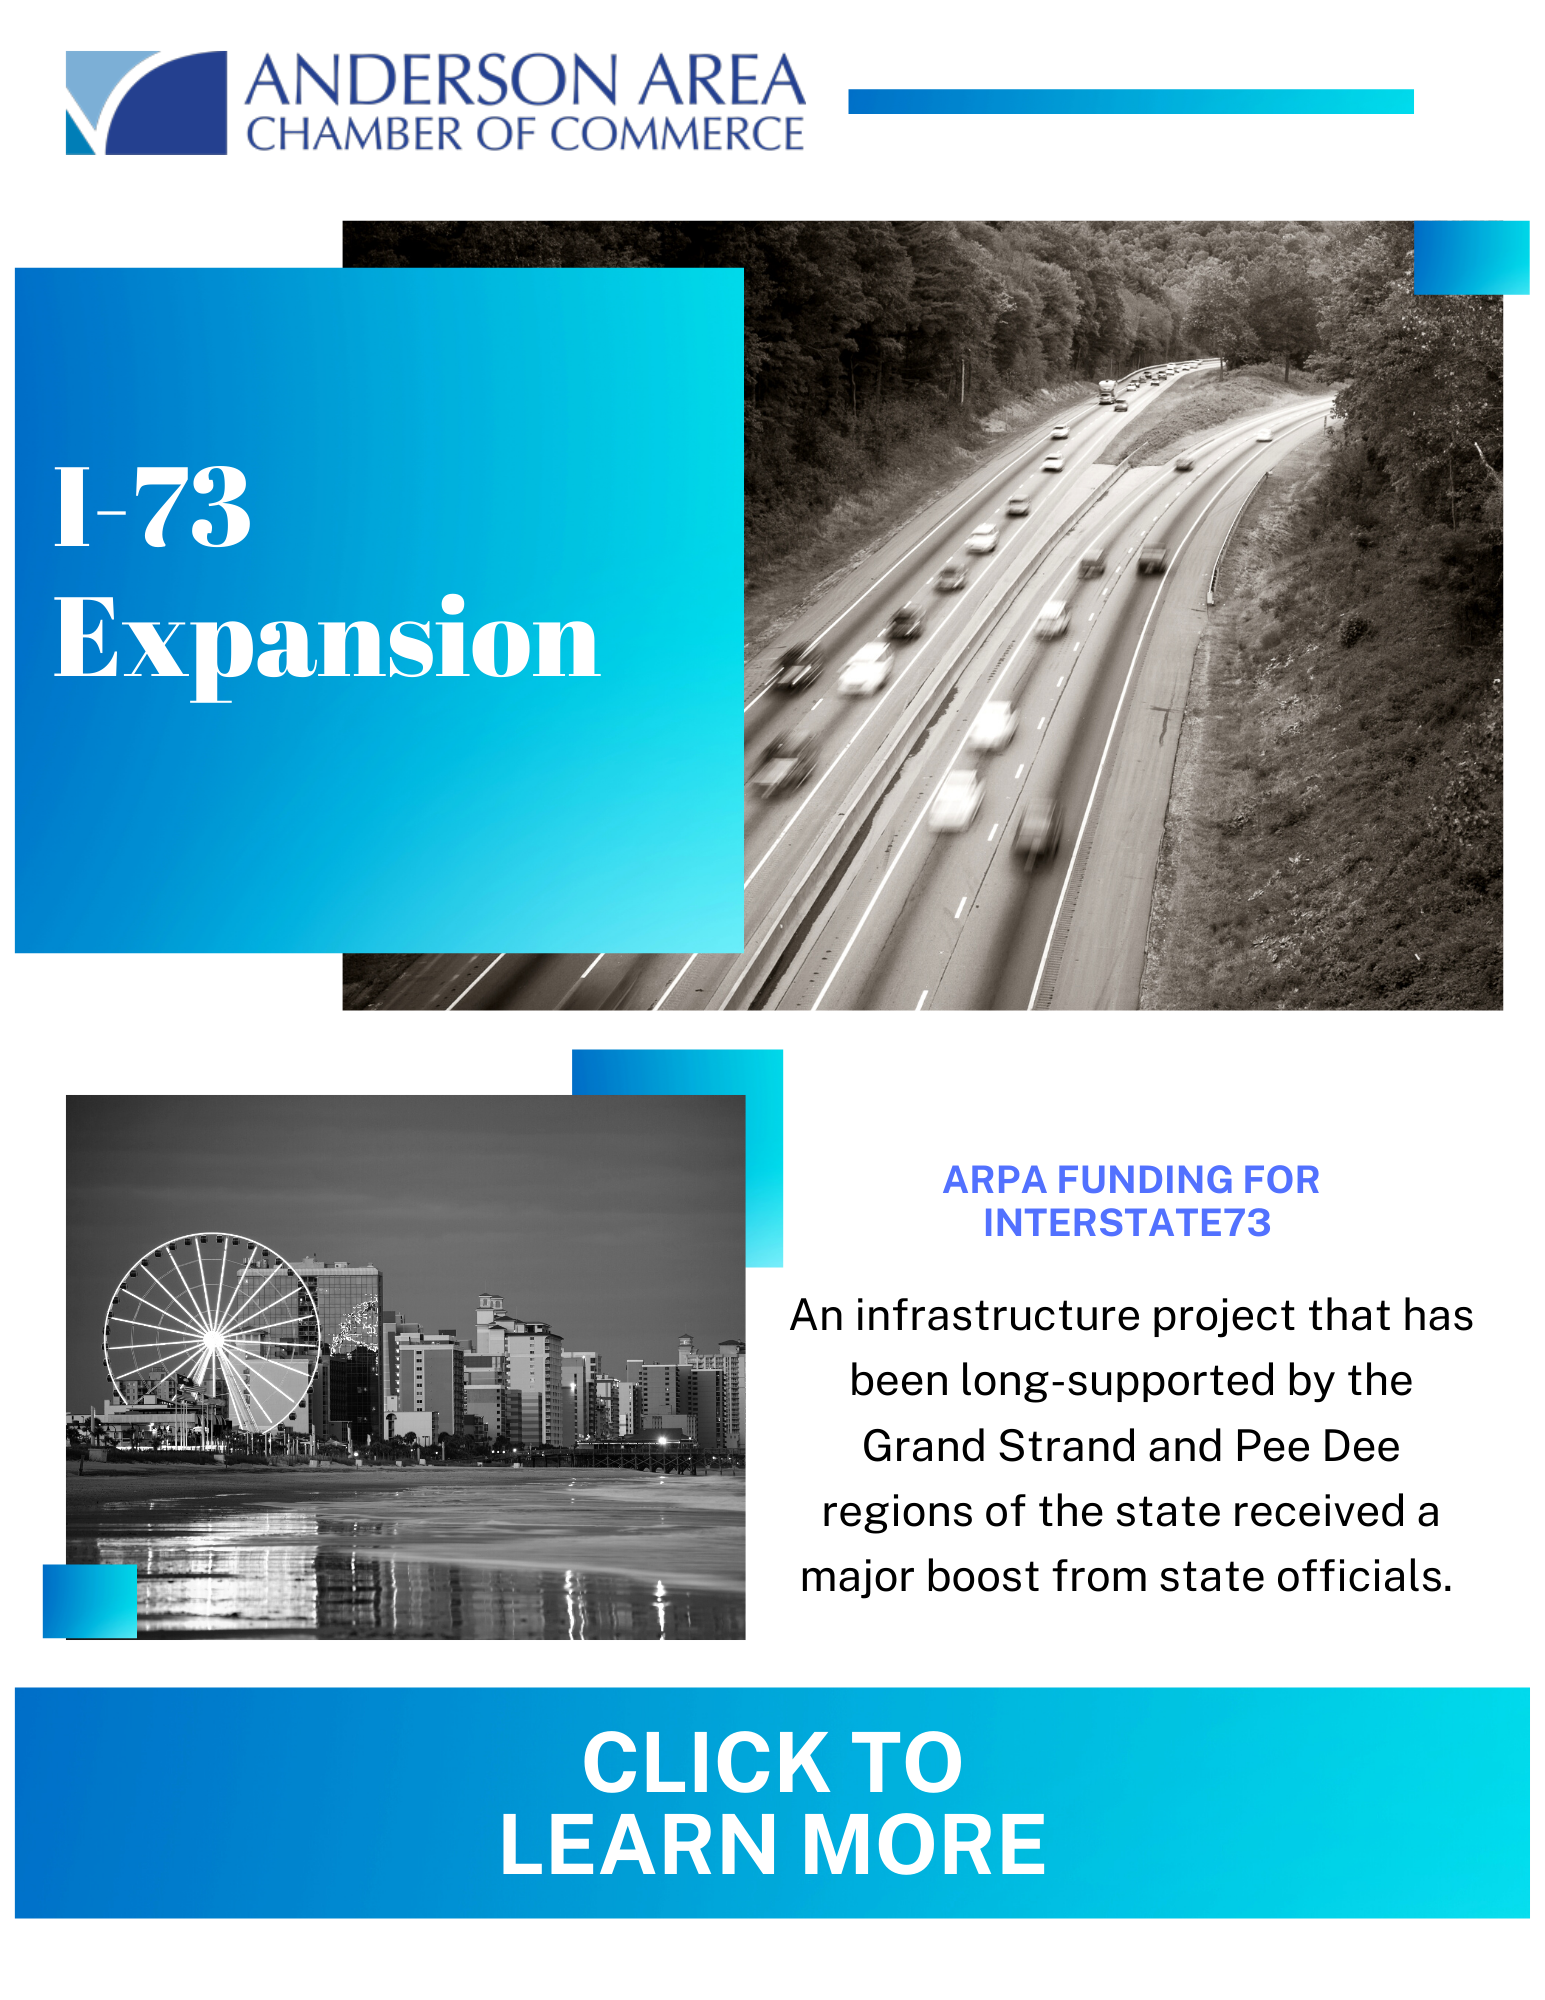 Image for Governor Announces Support for I-73 Expansion